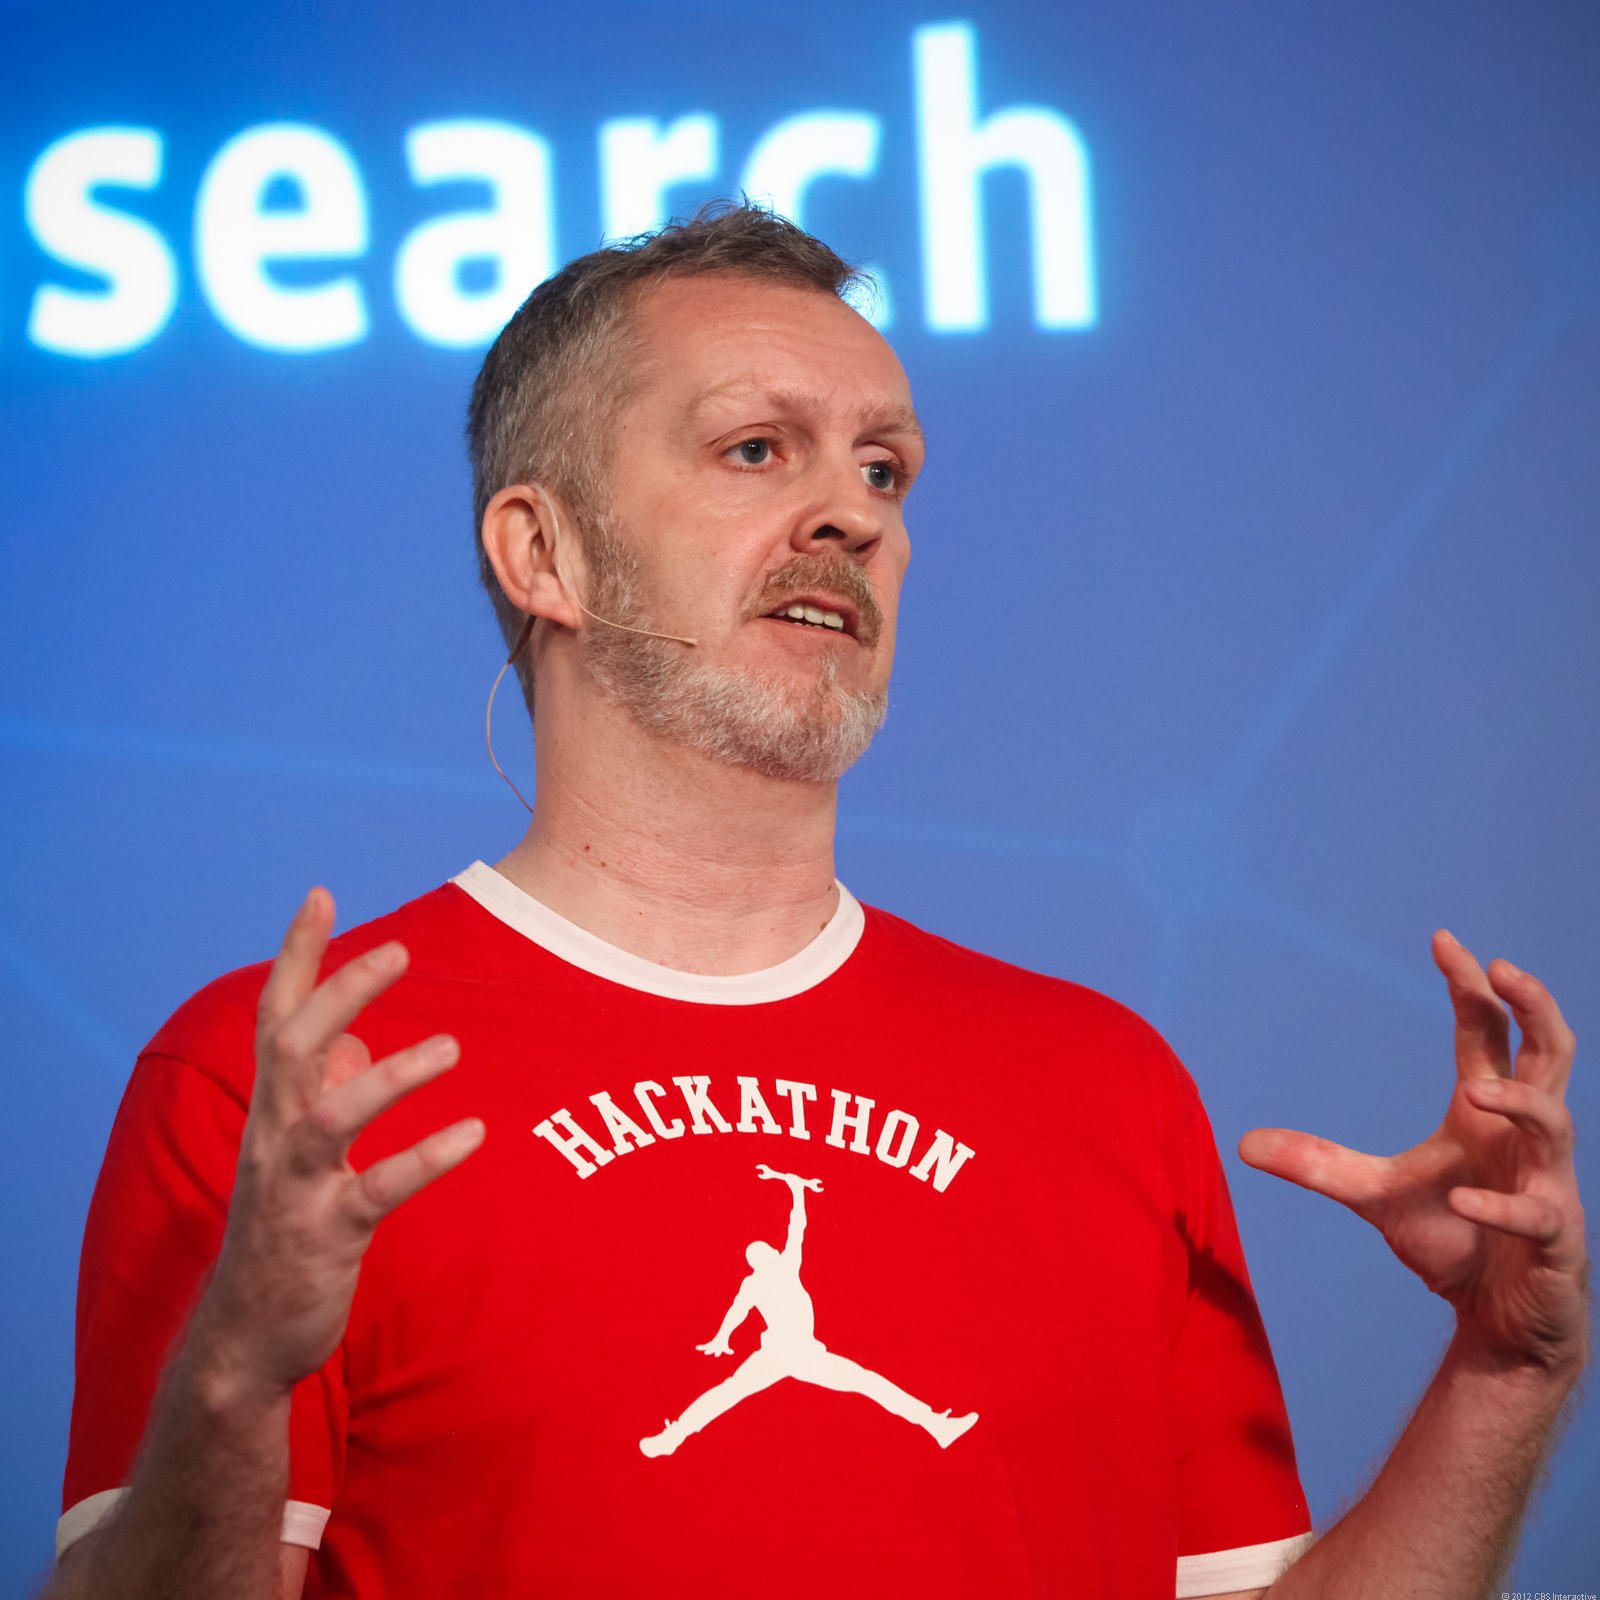 Lars Rasmussen, a former Google employee, is leading Facebook's efforts in search.